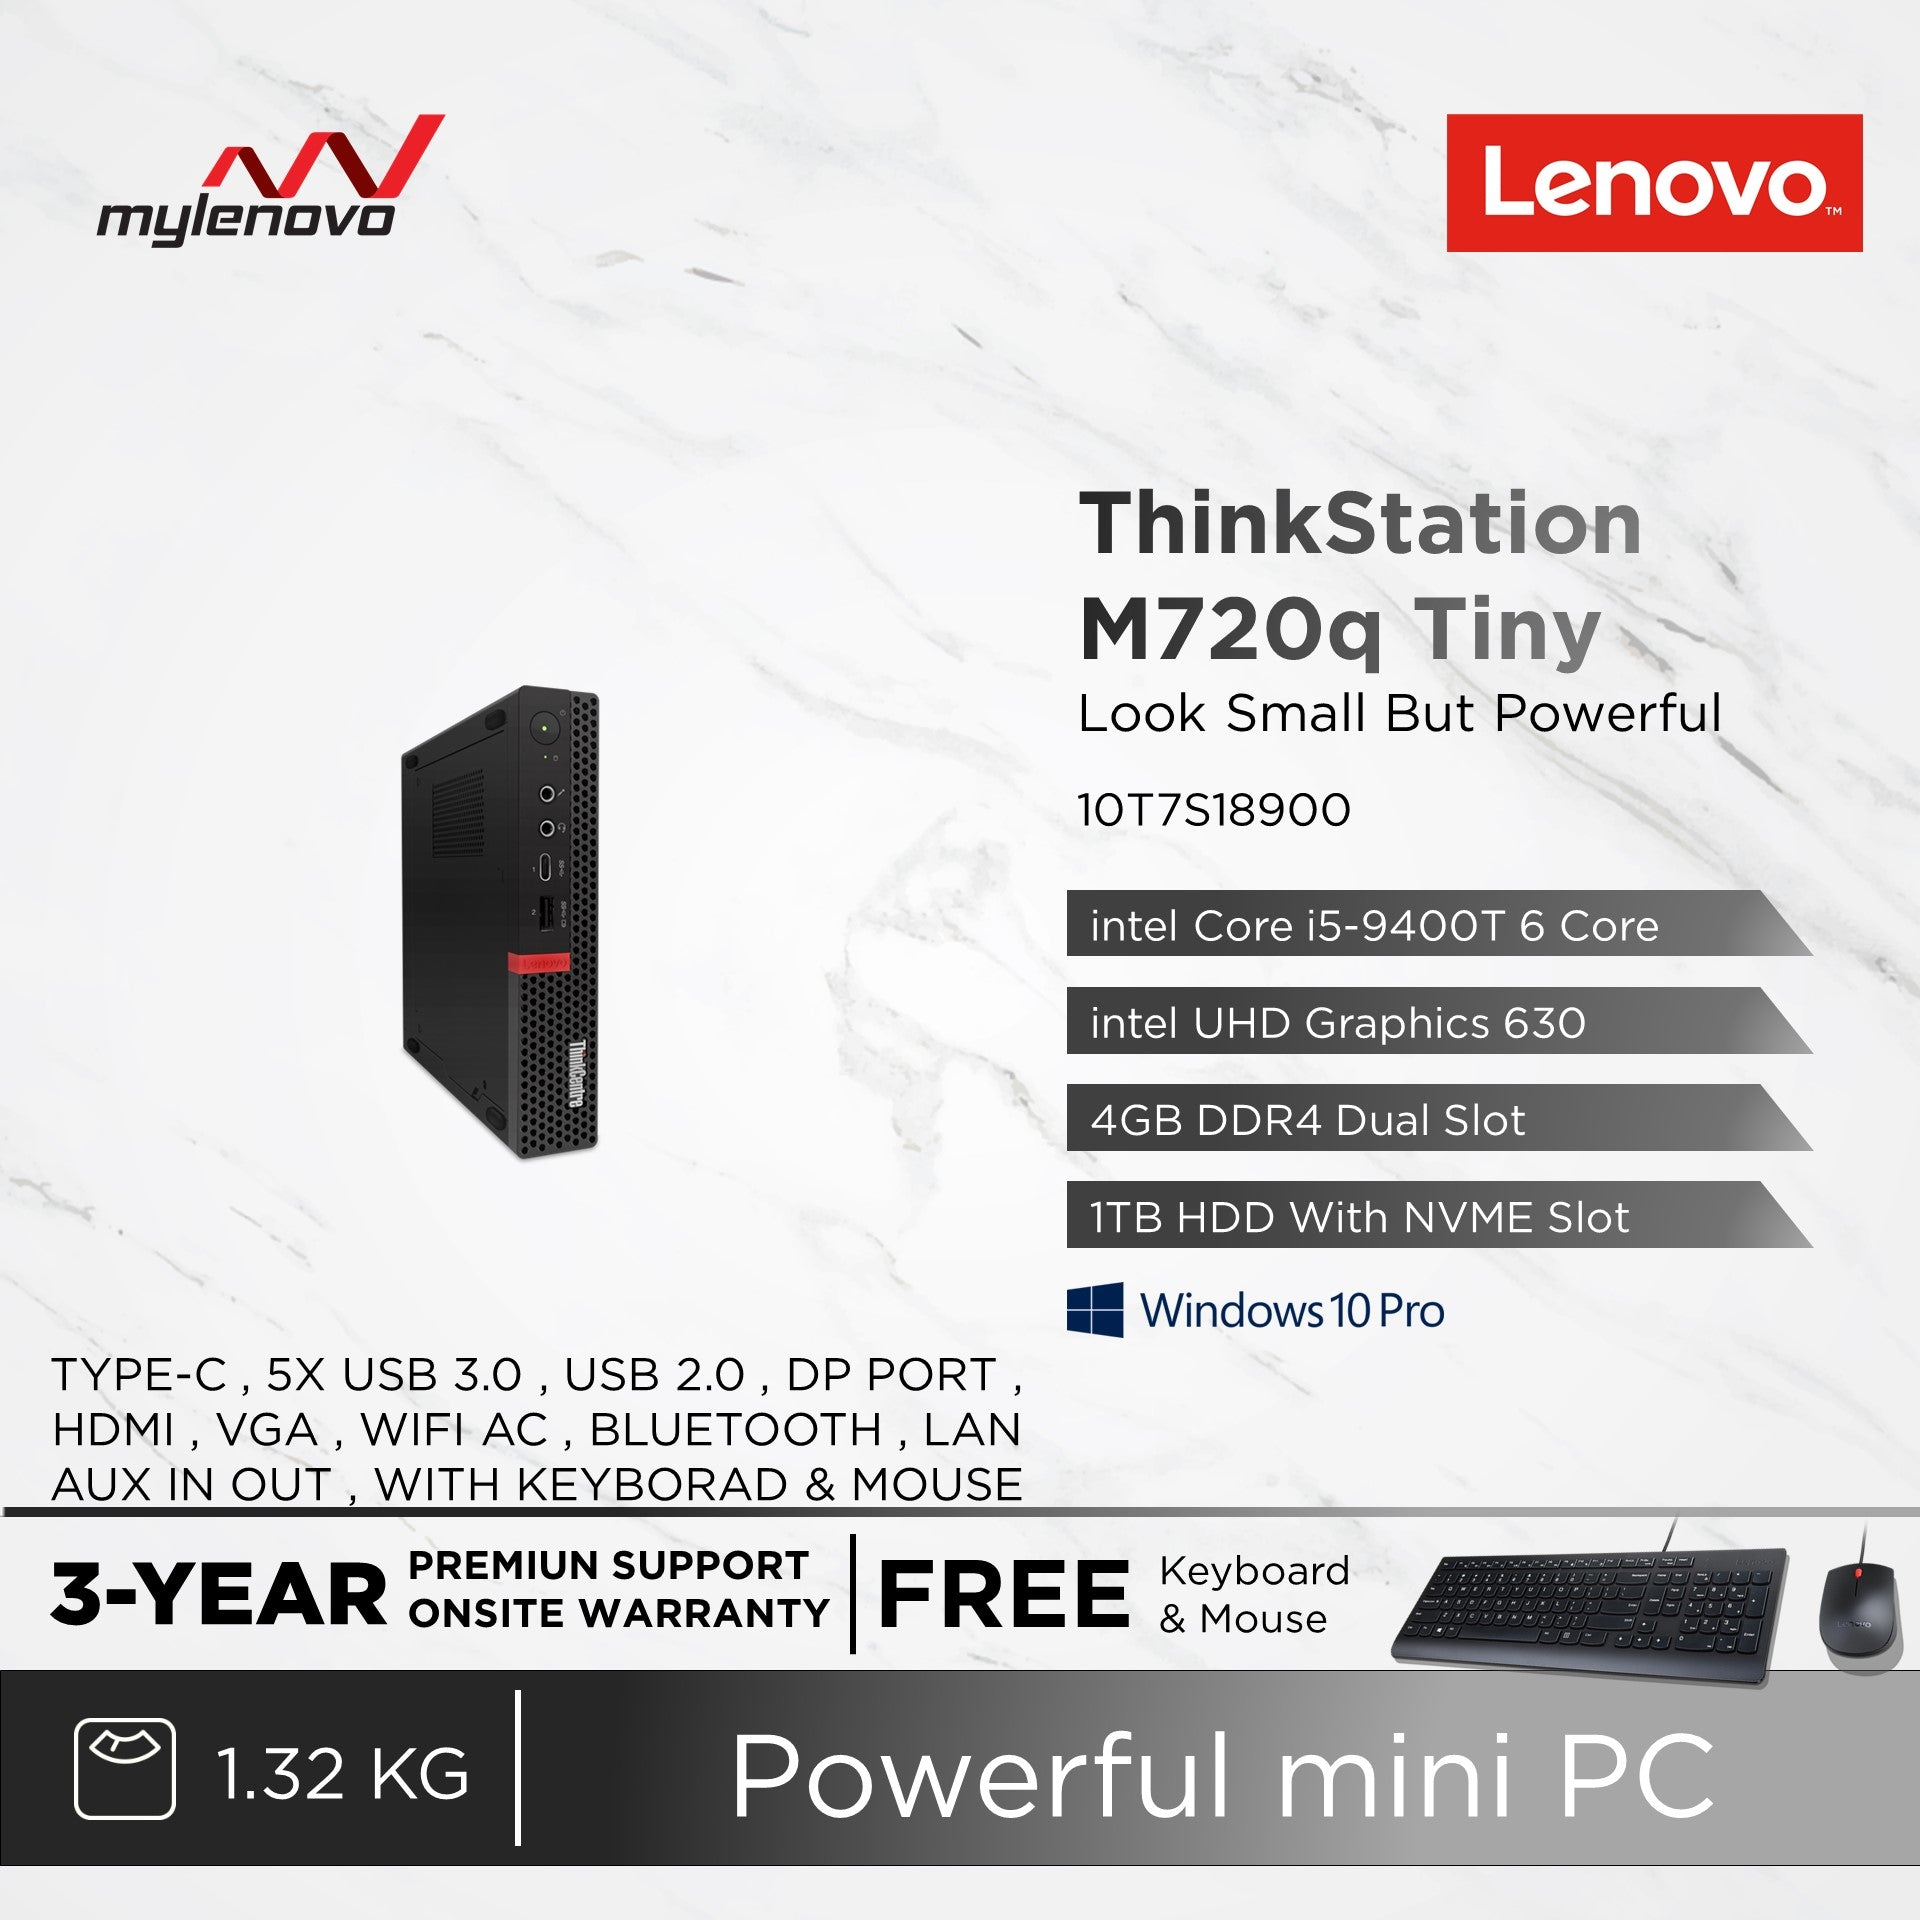 Lenovo ThinkCentre M720q M720 Tiny i5-9400T DIY AIO Router Hackintosh NUC PC NAS Office Business Desktop All in one